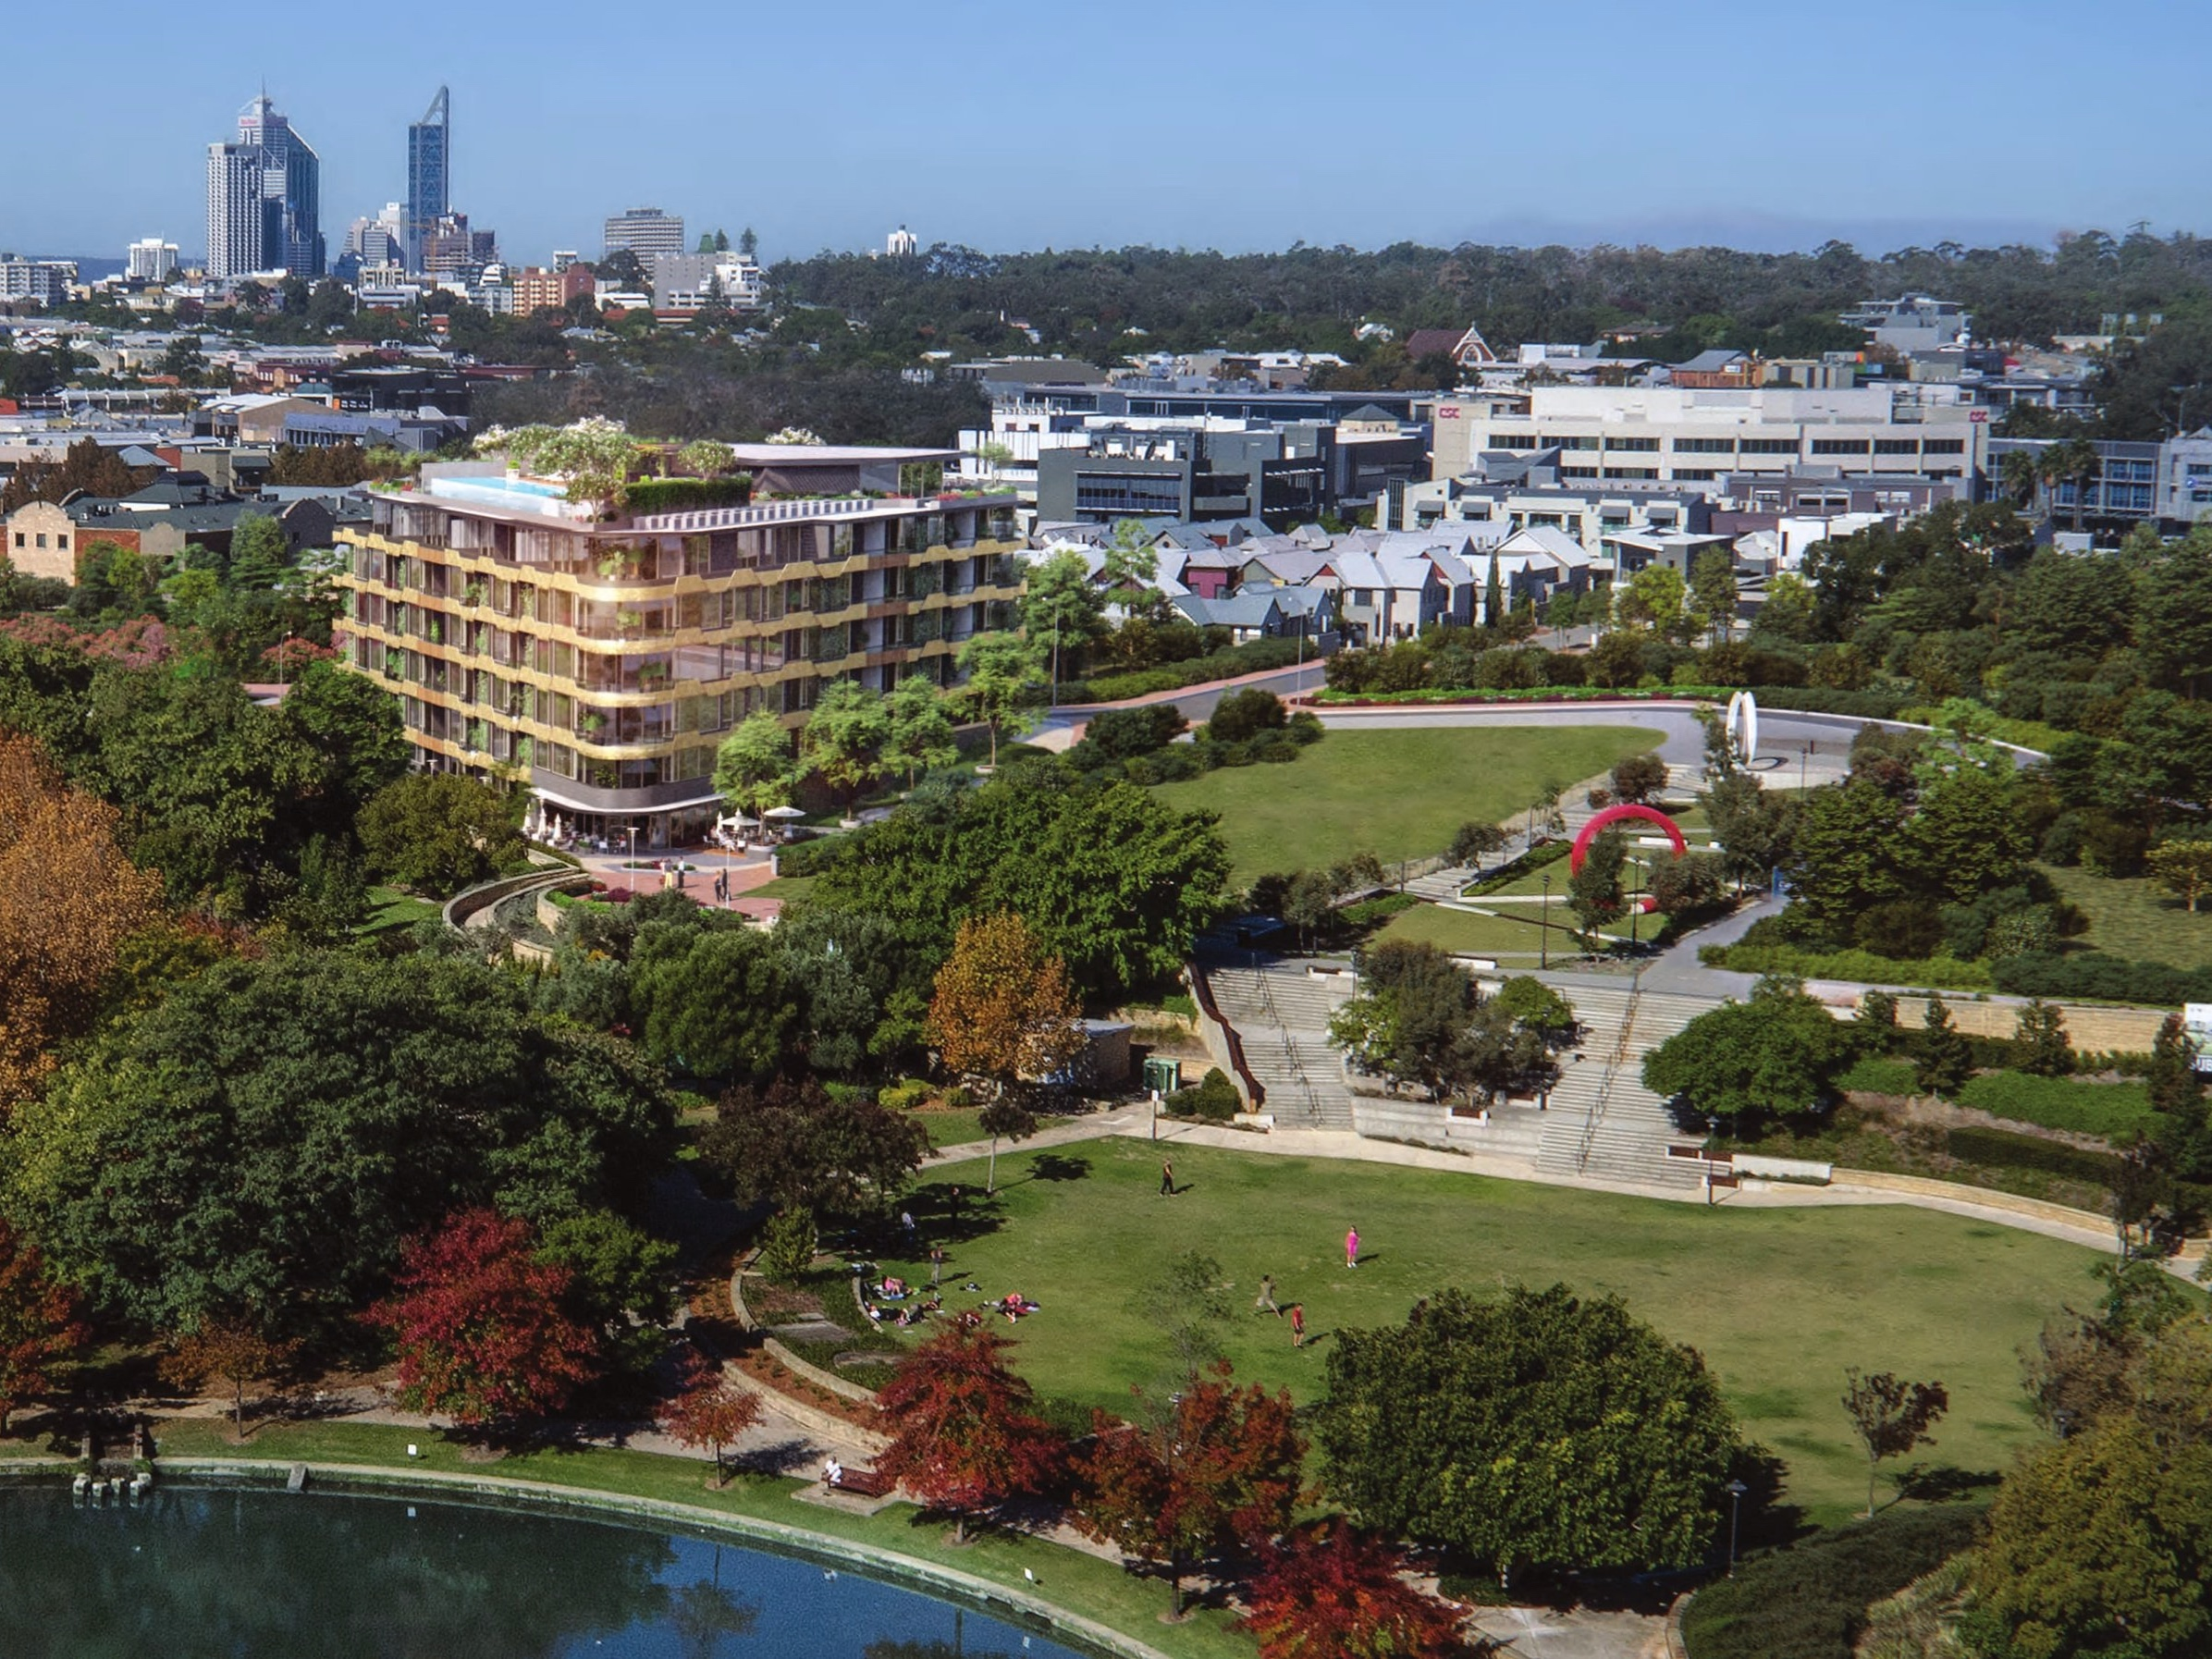 PARKLAND SERENITY AT YOUR DOORSTEP - Enter the world of Botanical. A world where, every day, you'll enjoy the peace and serenity of your very own piece of paradise. Just a short distance away lies Subiaco Common, one of Perth's best inner-city parkland retreats. With an ornamental lake as its centrepiece, surrounded by walking and cycle paths, and stunning landscaped gardens - all at your front door to enjoy all year round.Botanical's residents will have direct access to this beautifully landscaped and manicured parkland.